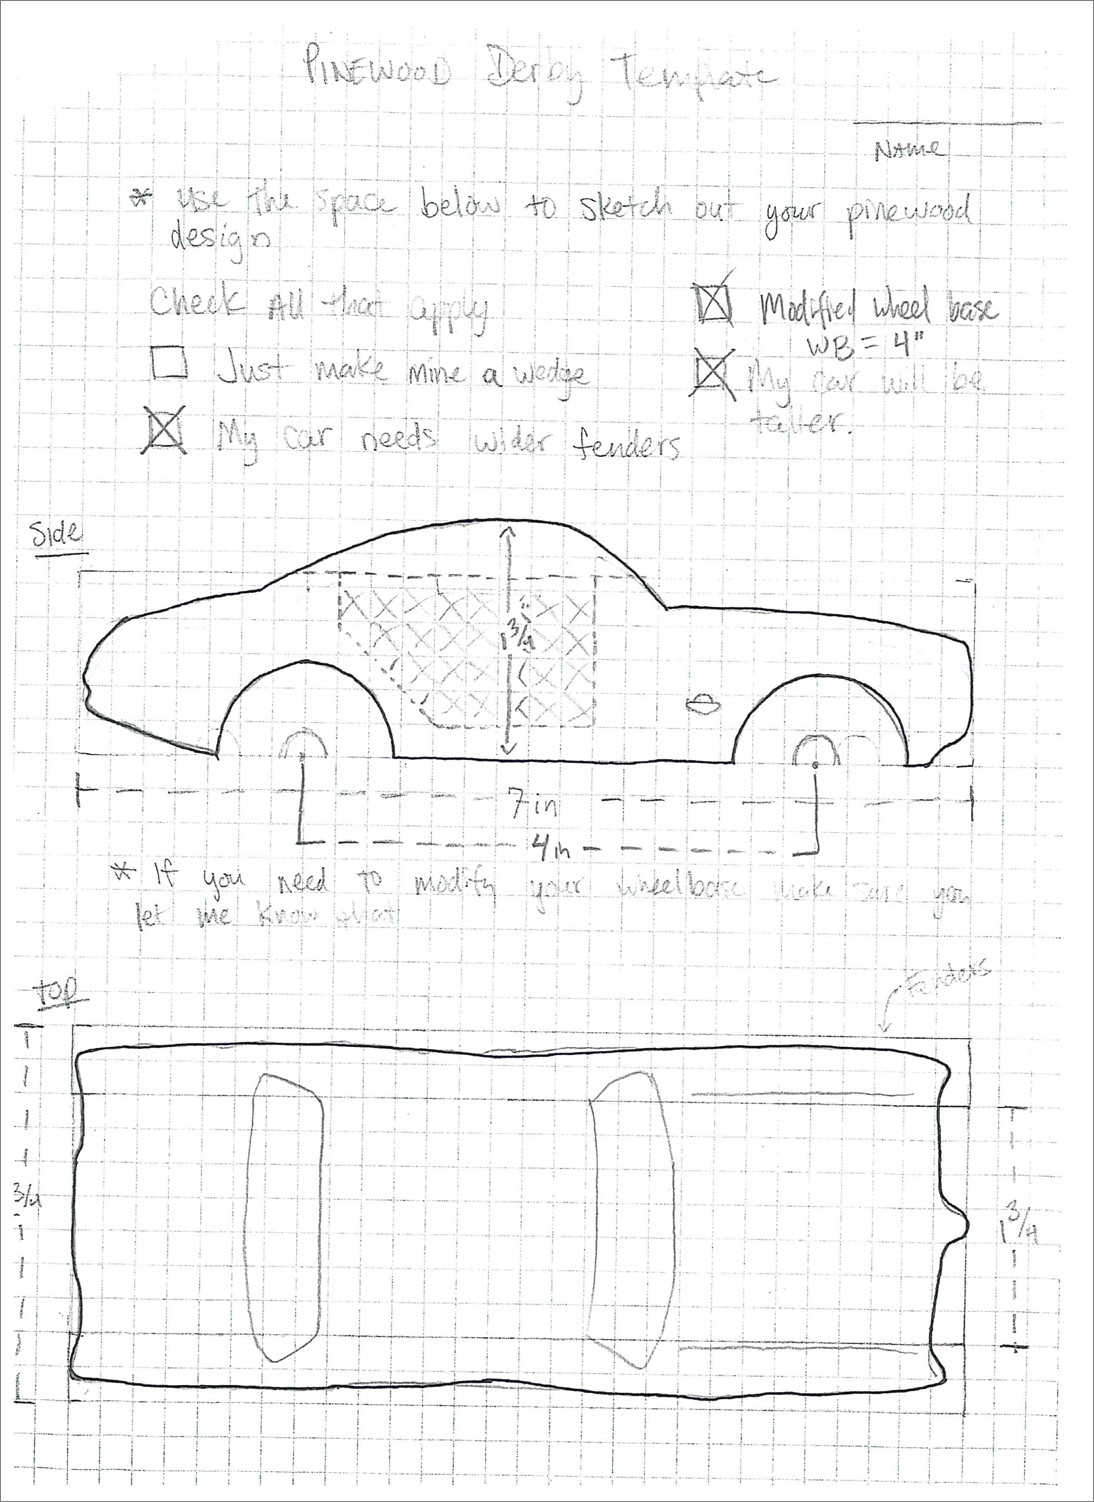 Pinewood Derby Car Templates Bonus Sketchup assignment Pinewood Derby